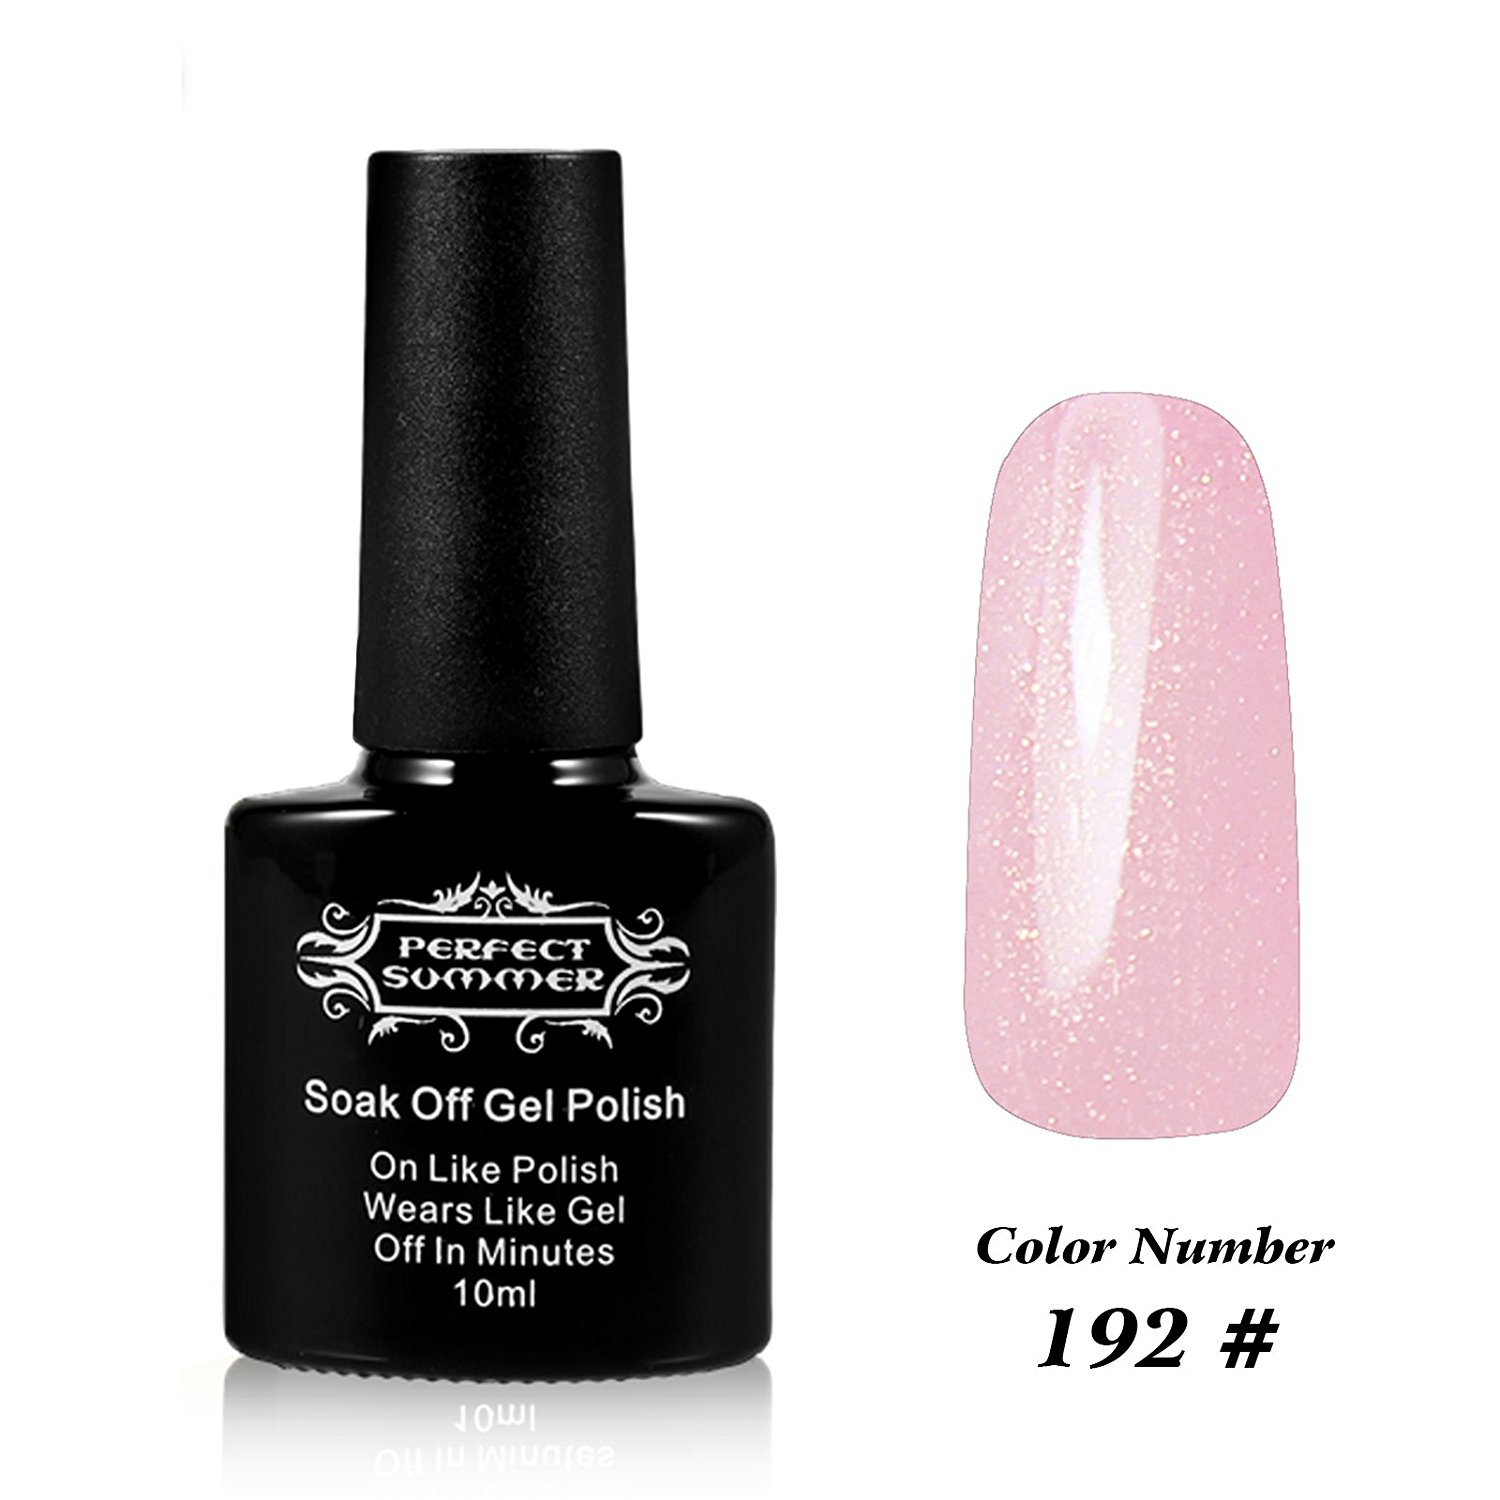 Perfect Summer Salon Nails Art Decoration Gift 10ml Gel Nails Polish UV Led Light Soak Off Creative French Manicure Nails Lacquers for Girls #192 light pink